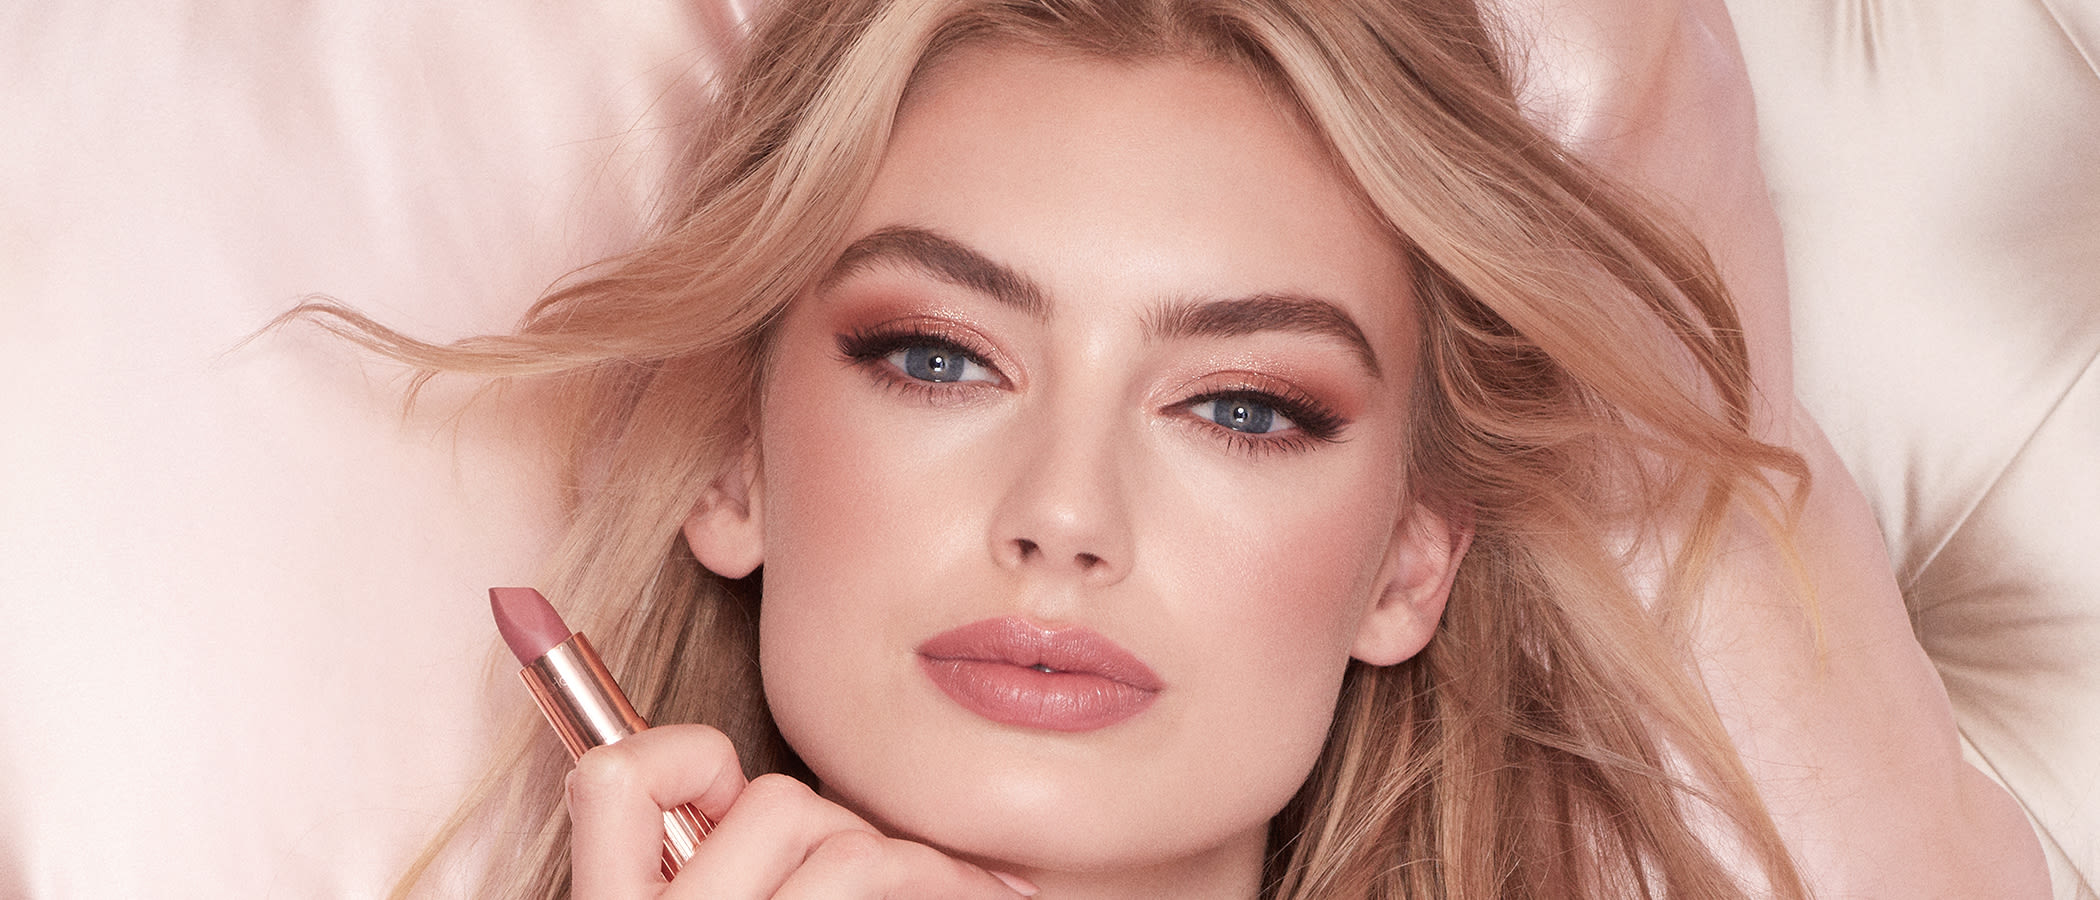 Charlotte Tilbury Valentine's Day Makeup How To Category